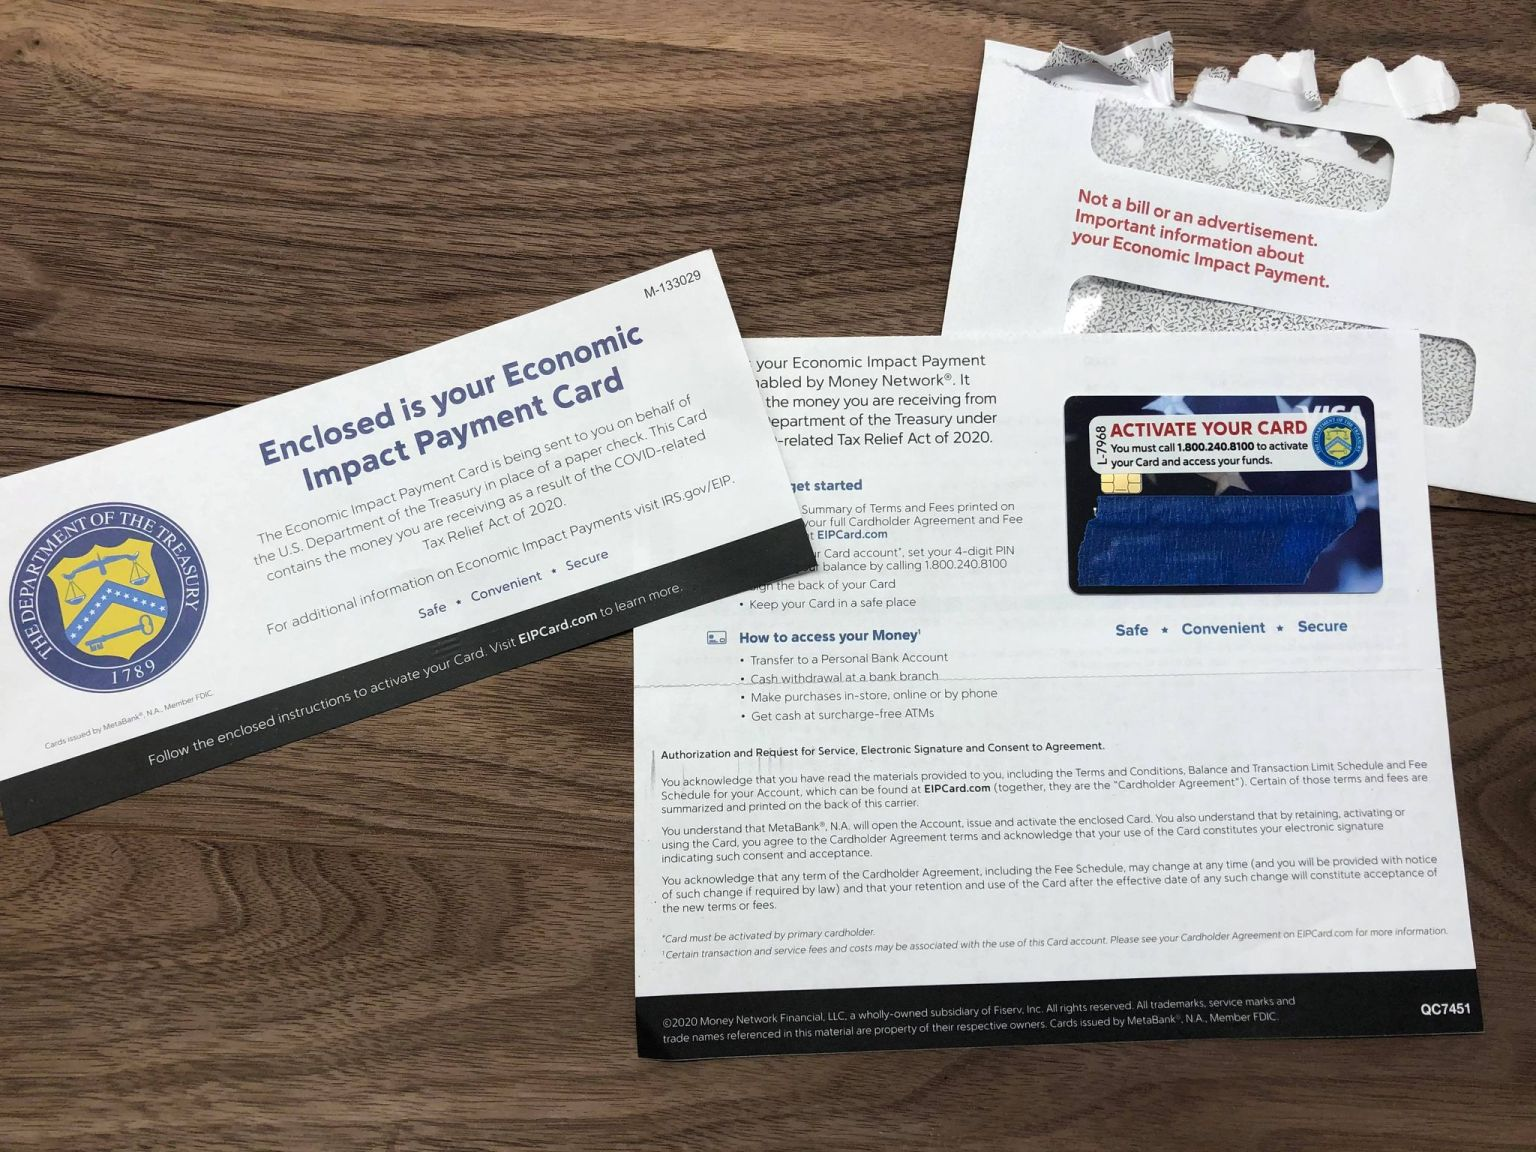 Transaction fees may apply to prepaid stimulus relief card